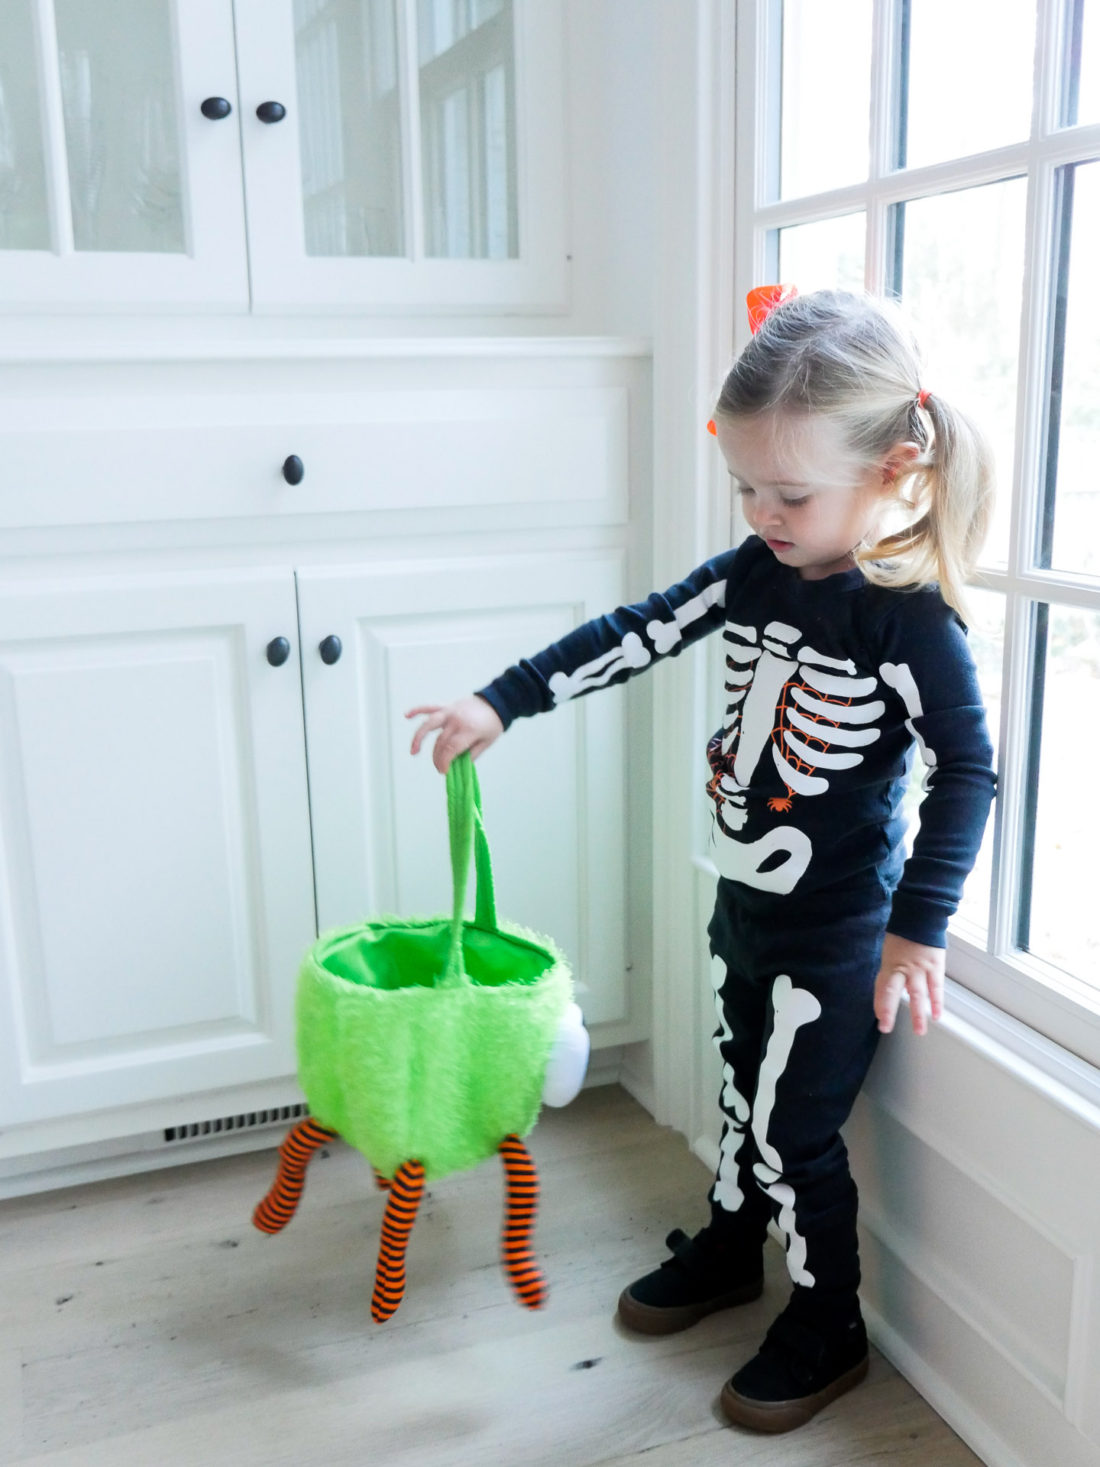 Marlowe Martino dressed up as a skeleton for halloween, holding a green and orange trick or treating bag